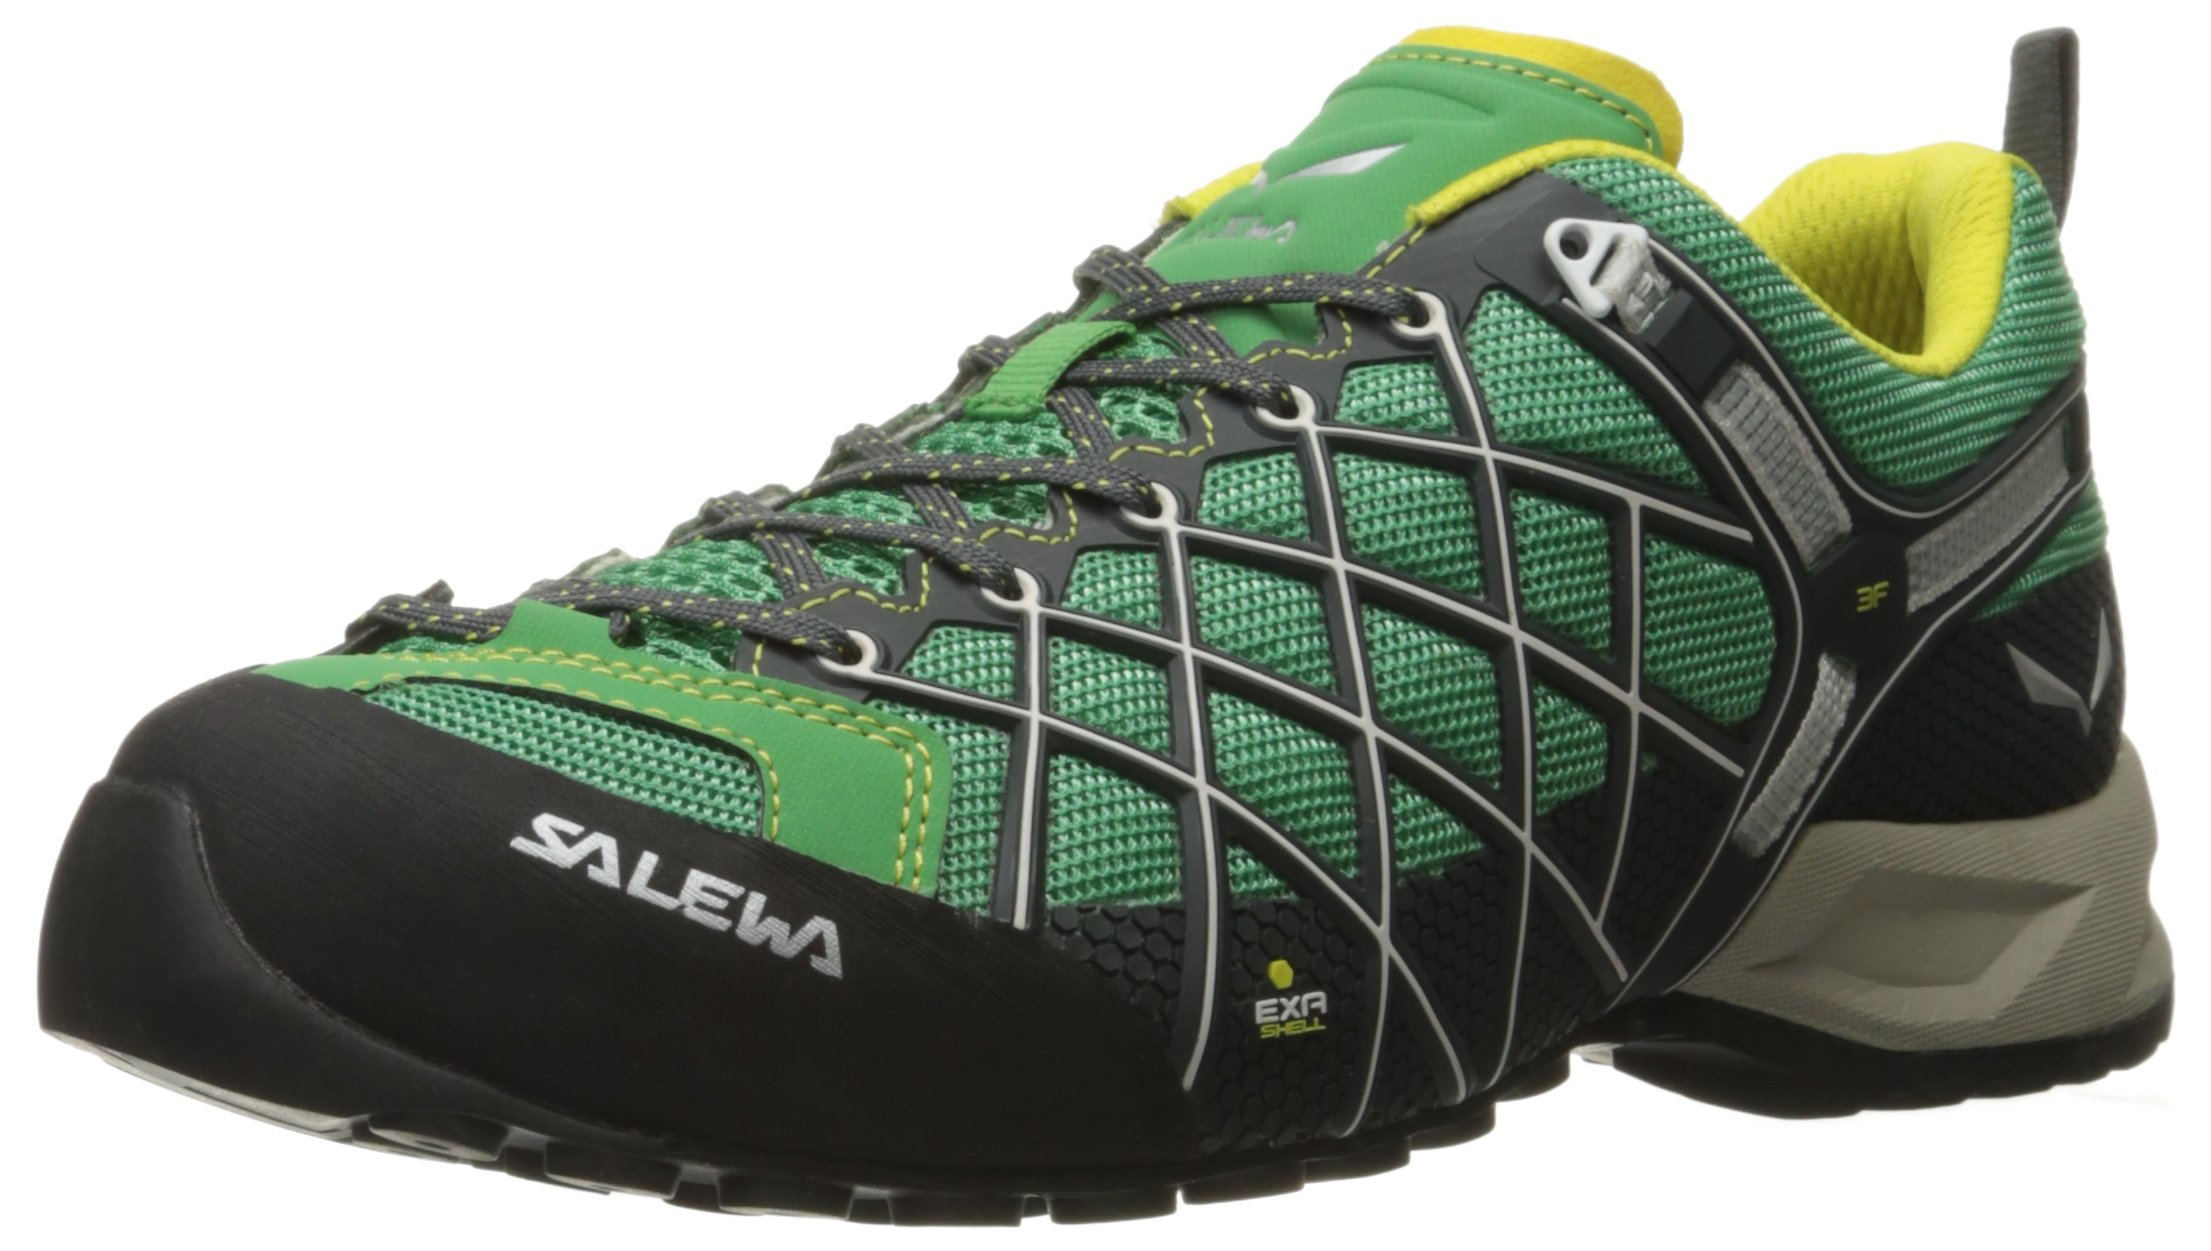 Salewa Women's WS Wildfire Vent Approach Shoe, Carbon/Assenzio, 8.5 M US